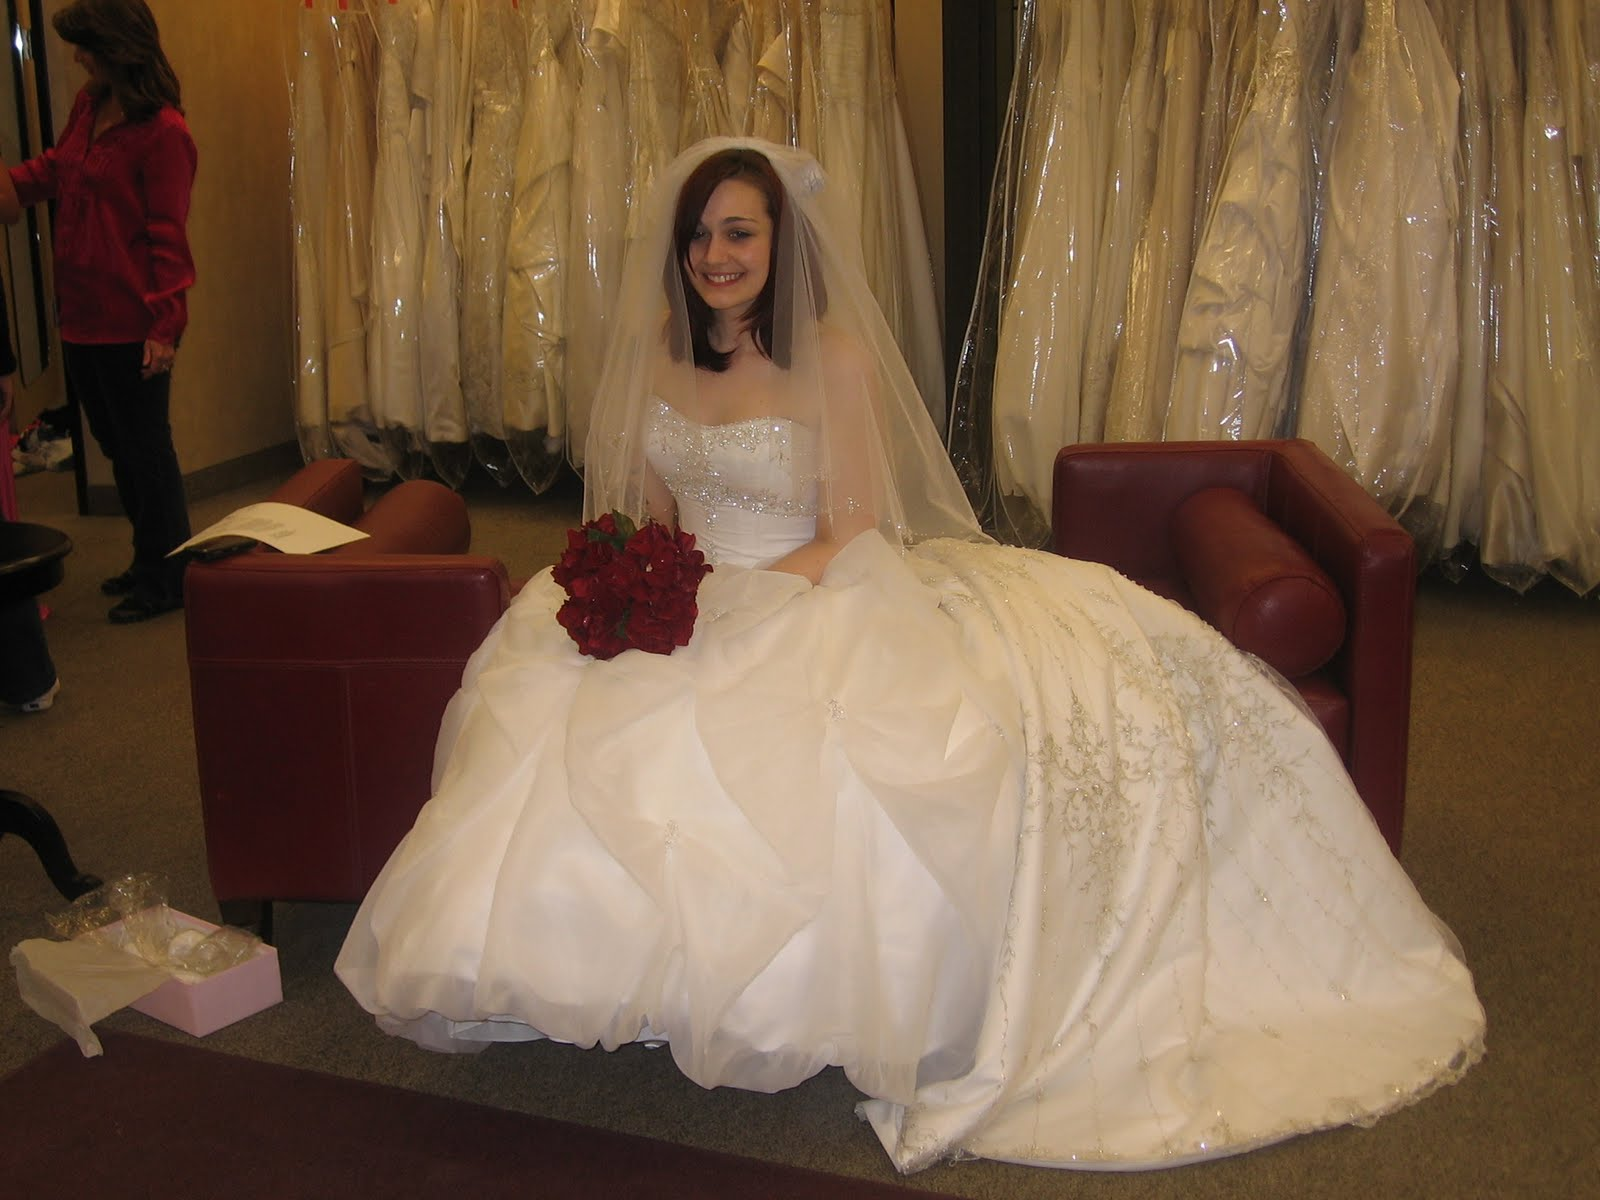 Wallpaper Backgrounds: Puffy Bridal Dresses